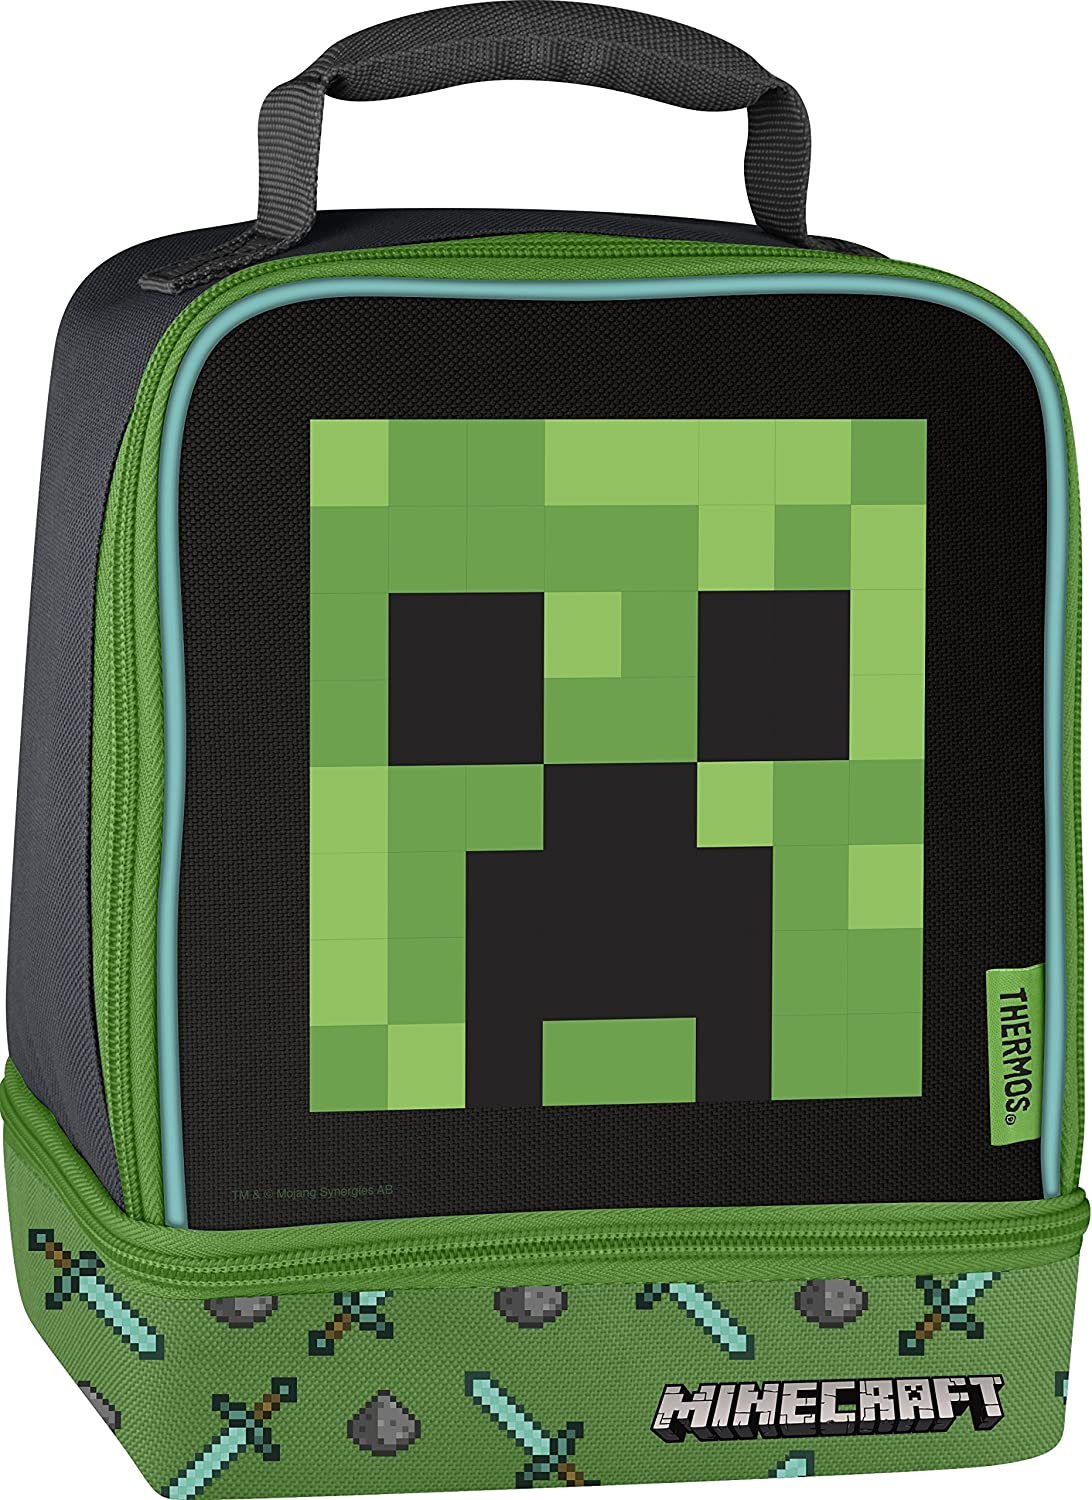 Thermos Licensed Dual Lunch Kit, Minecraft - Creeper